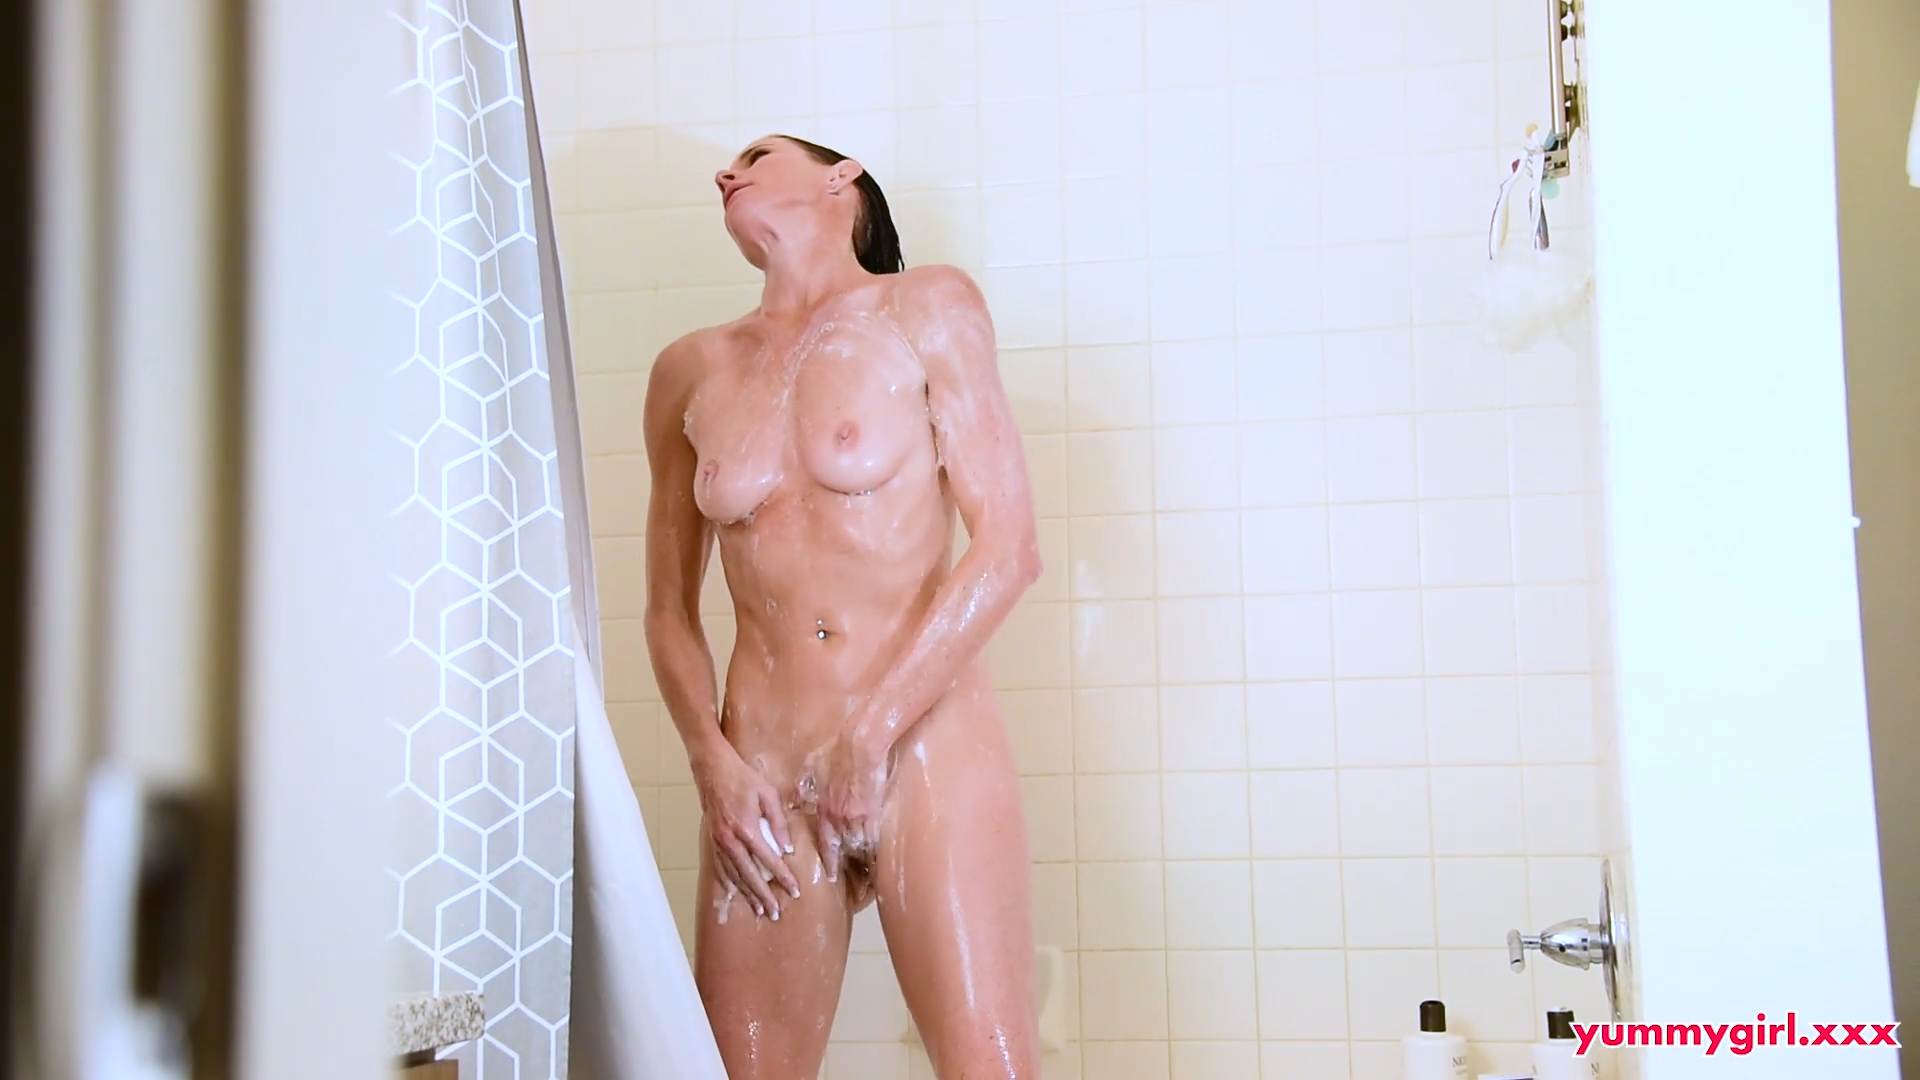 Ace Rockwood Gay Porn Actor ace i watched mommy shower - megapornx